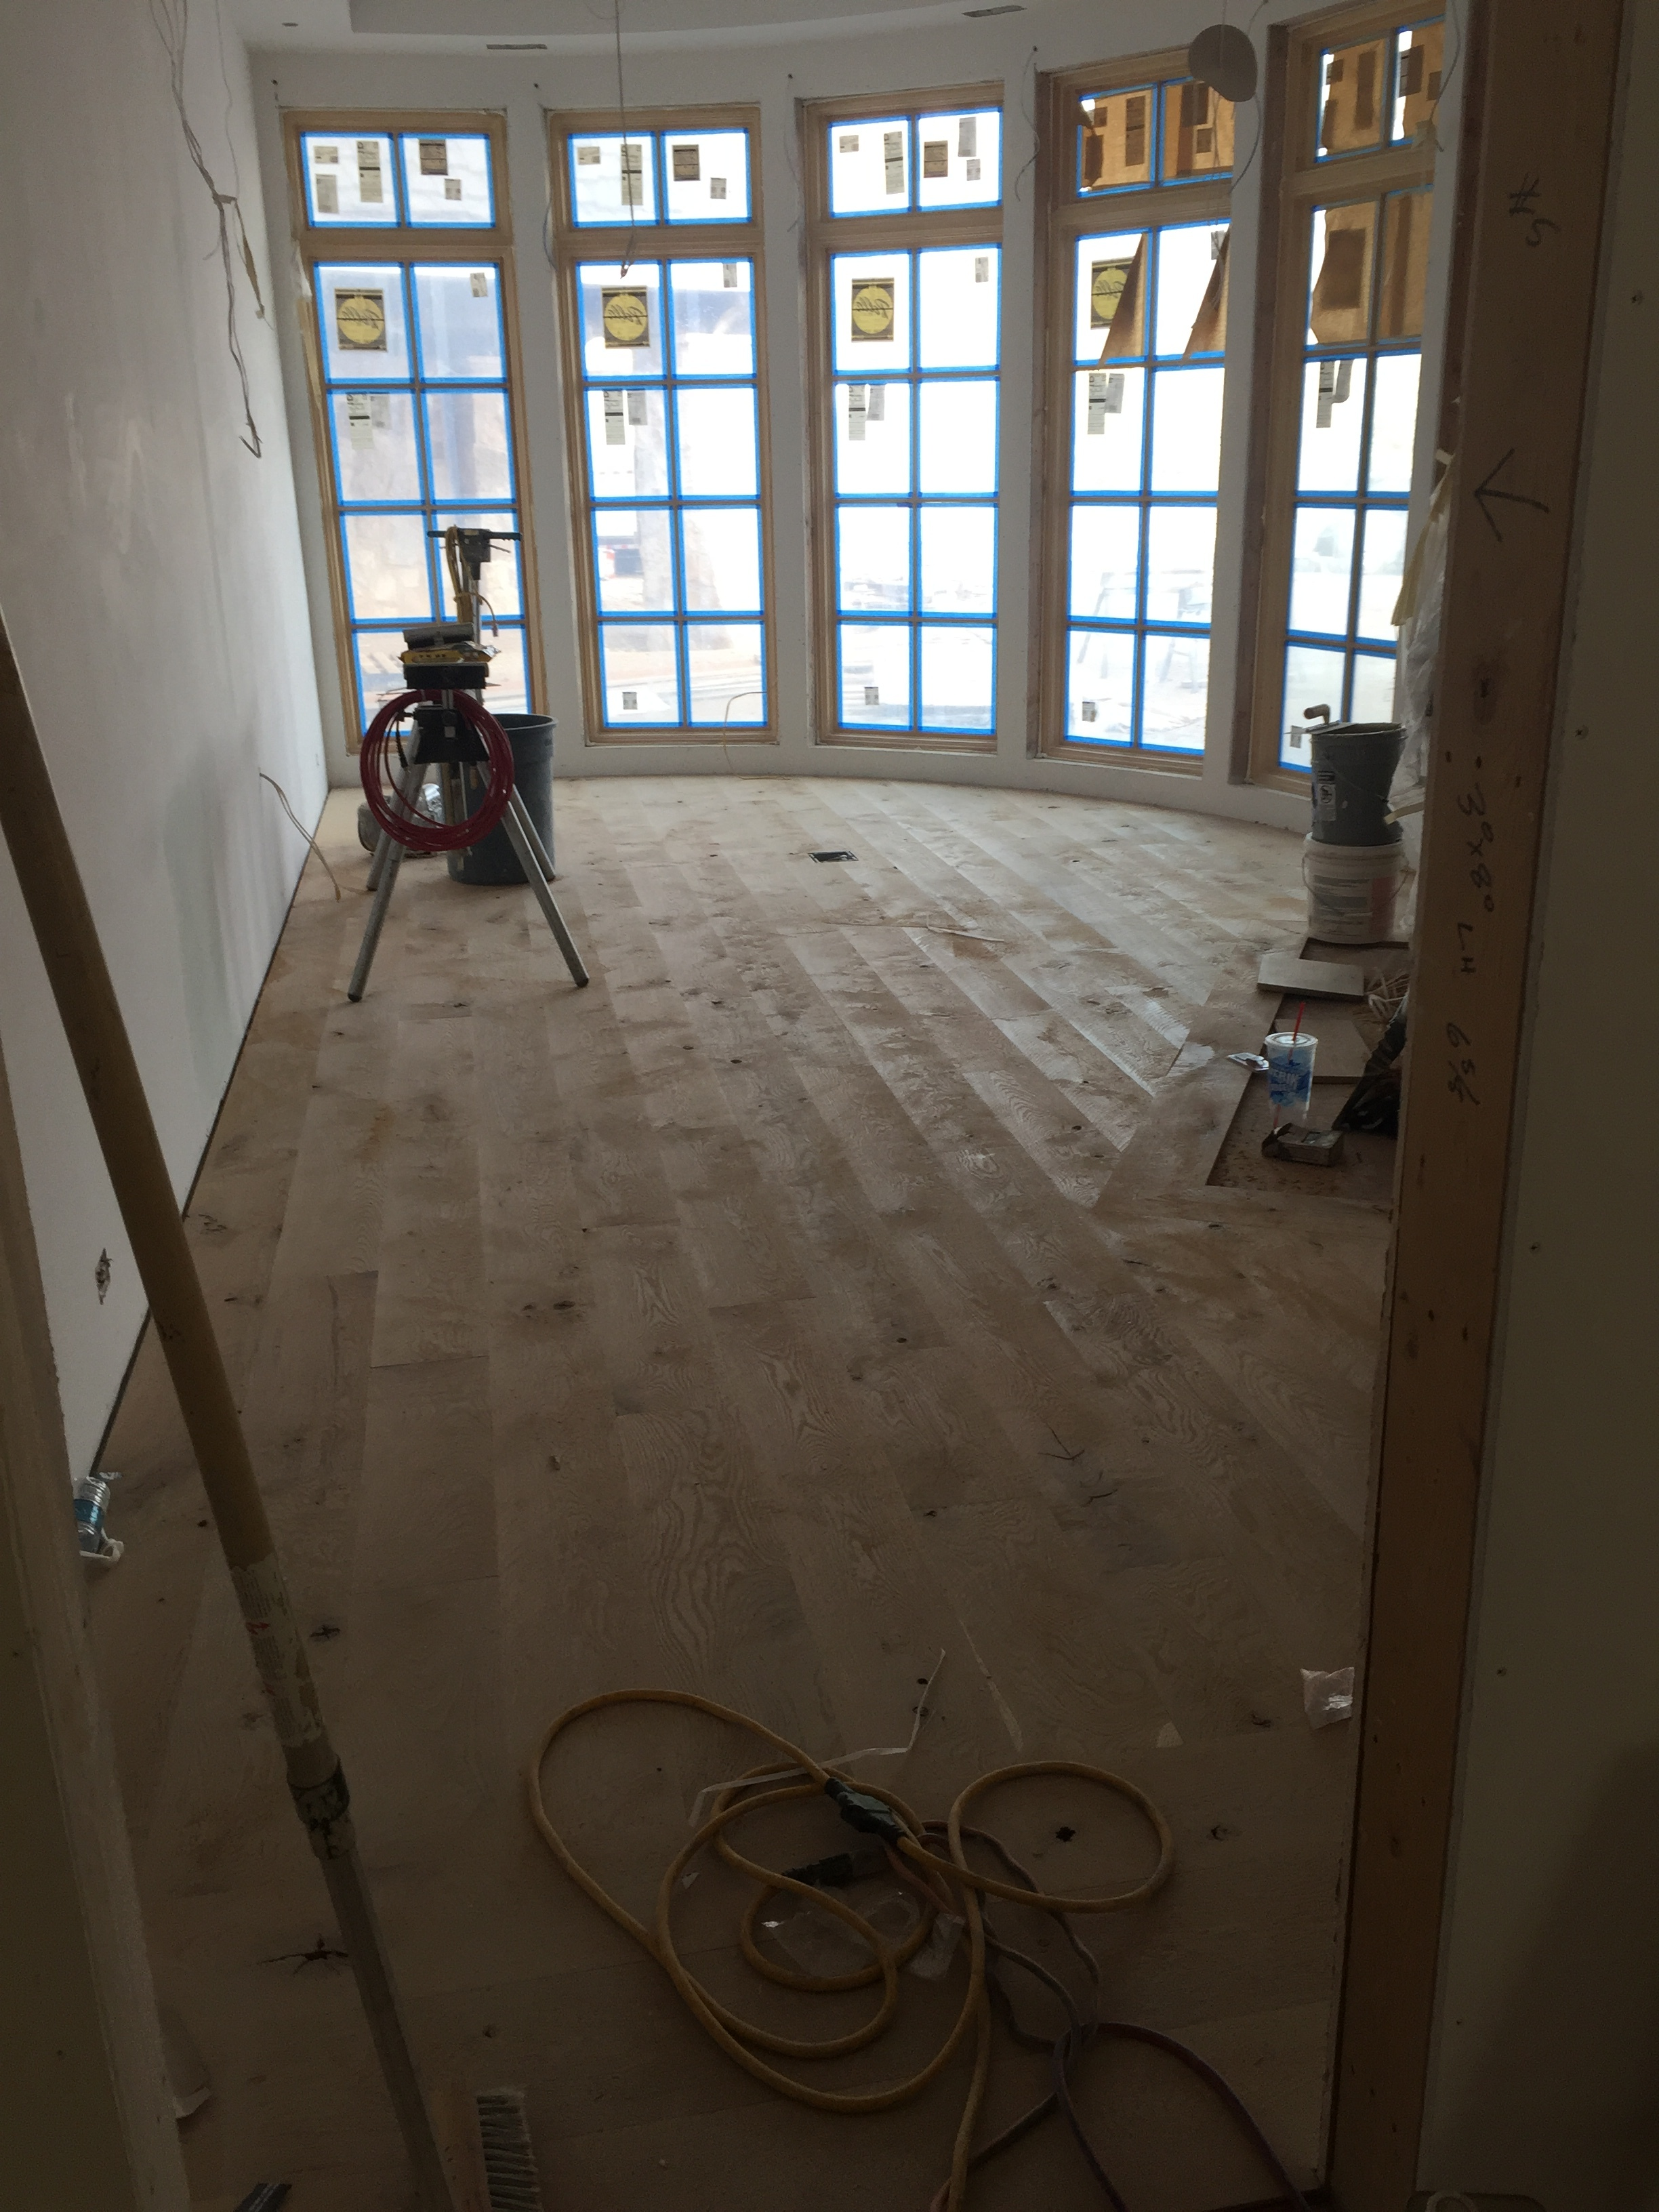 We decided on French Oak wood flooring for the office found near the front of the house. Another wall of amazing windows will make for bright space!